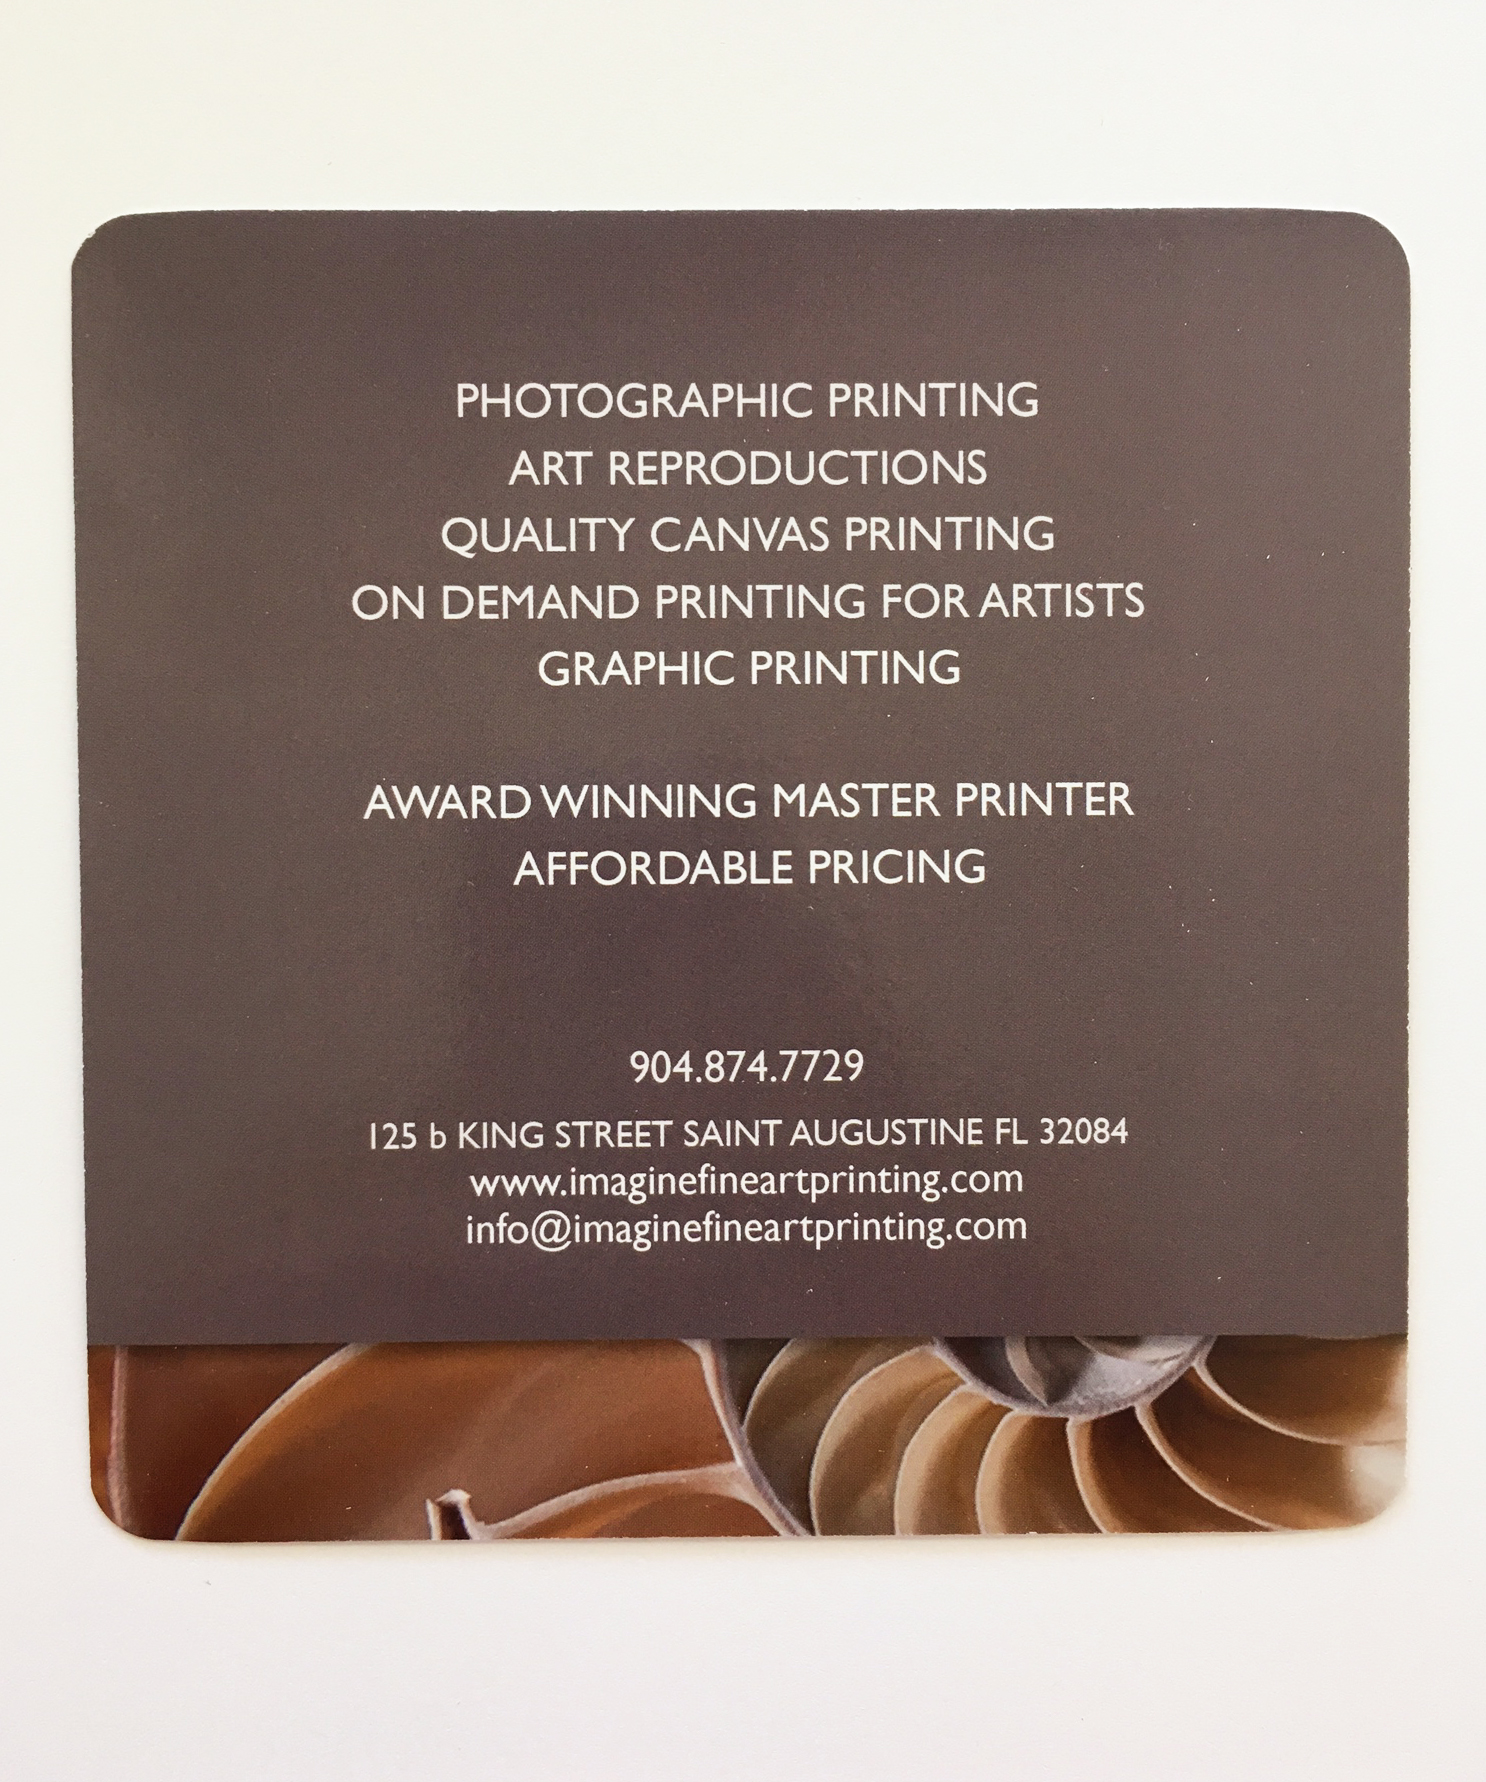 Imagine Fine Art Printing Rack Card